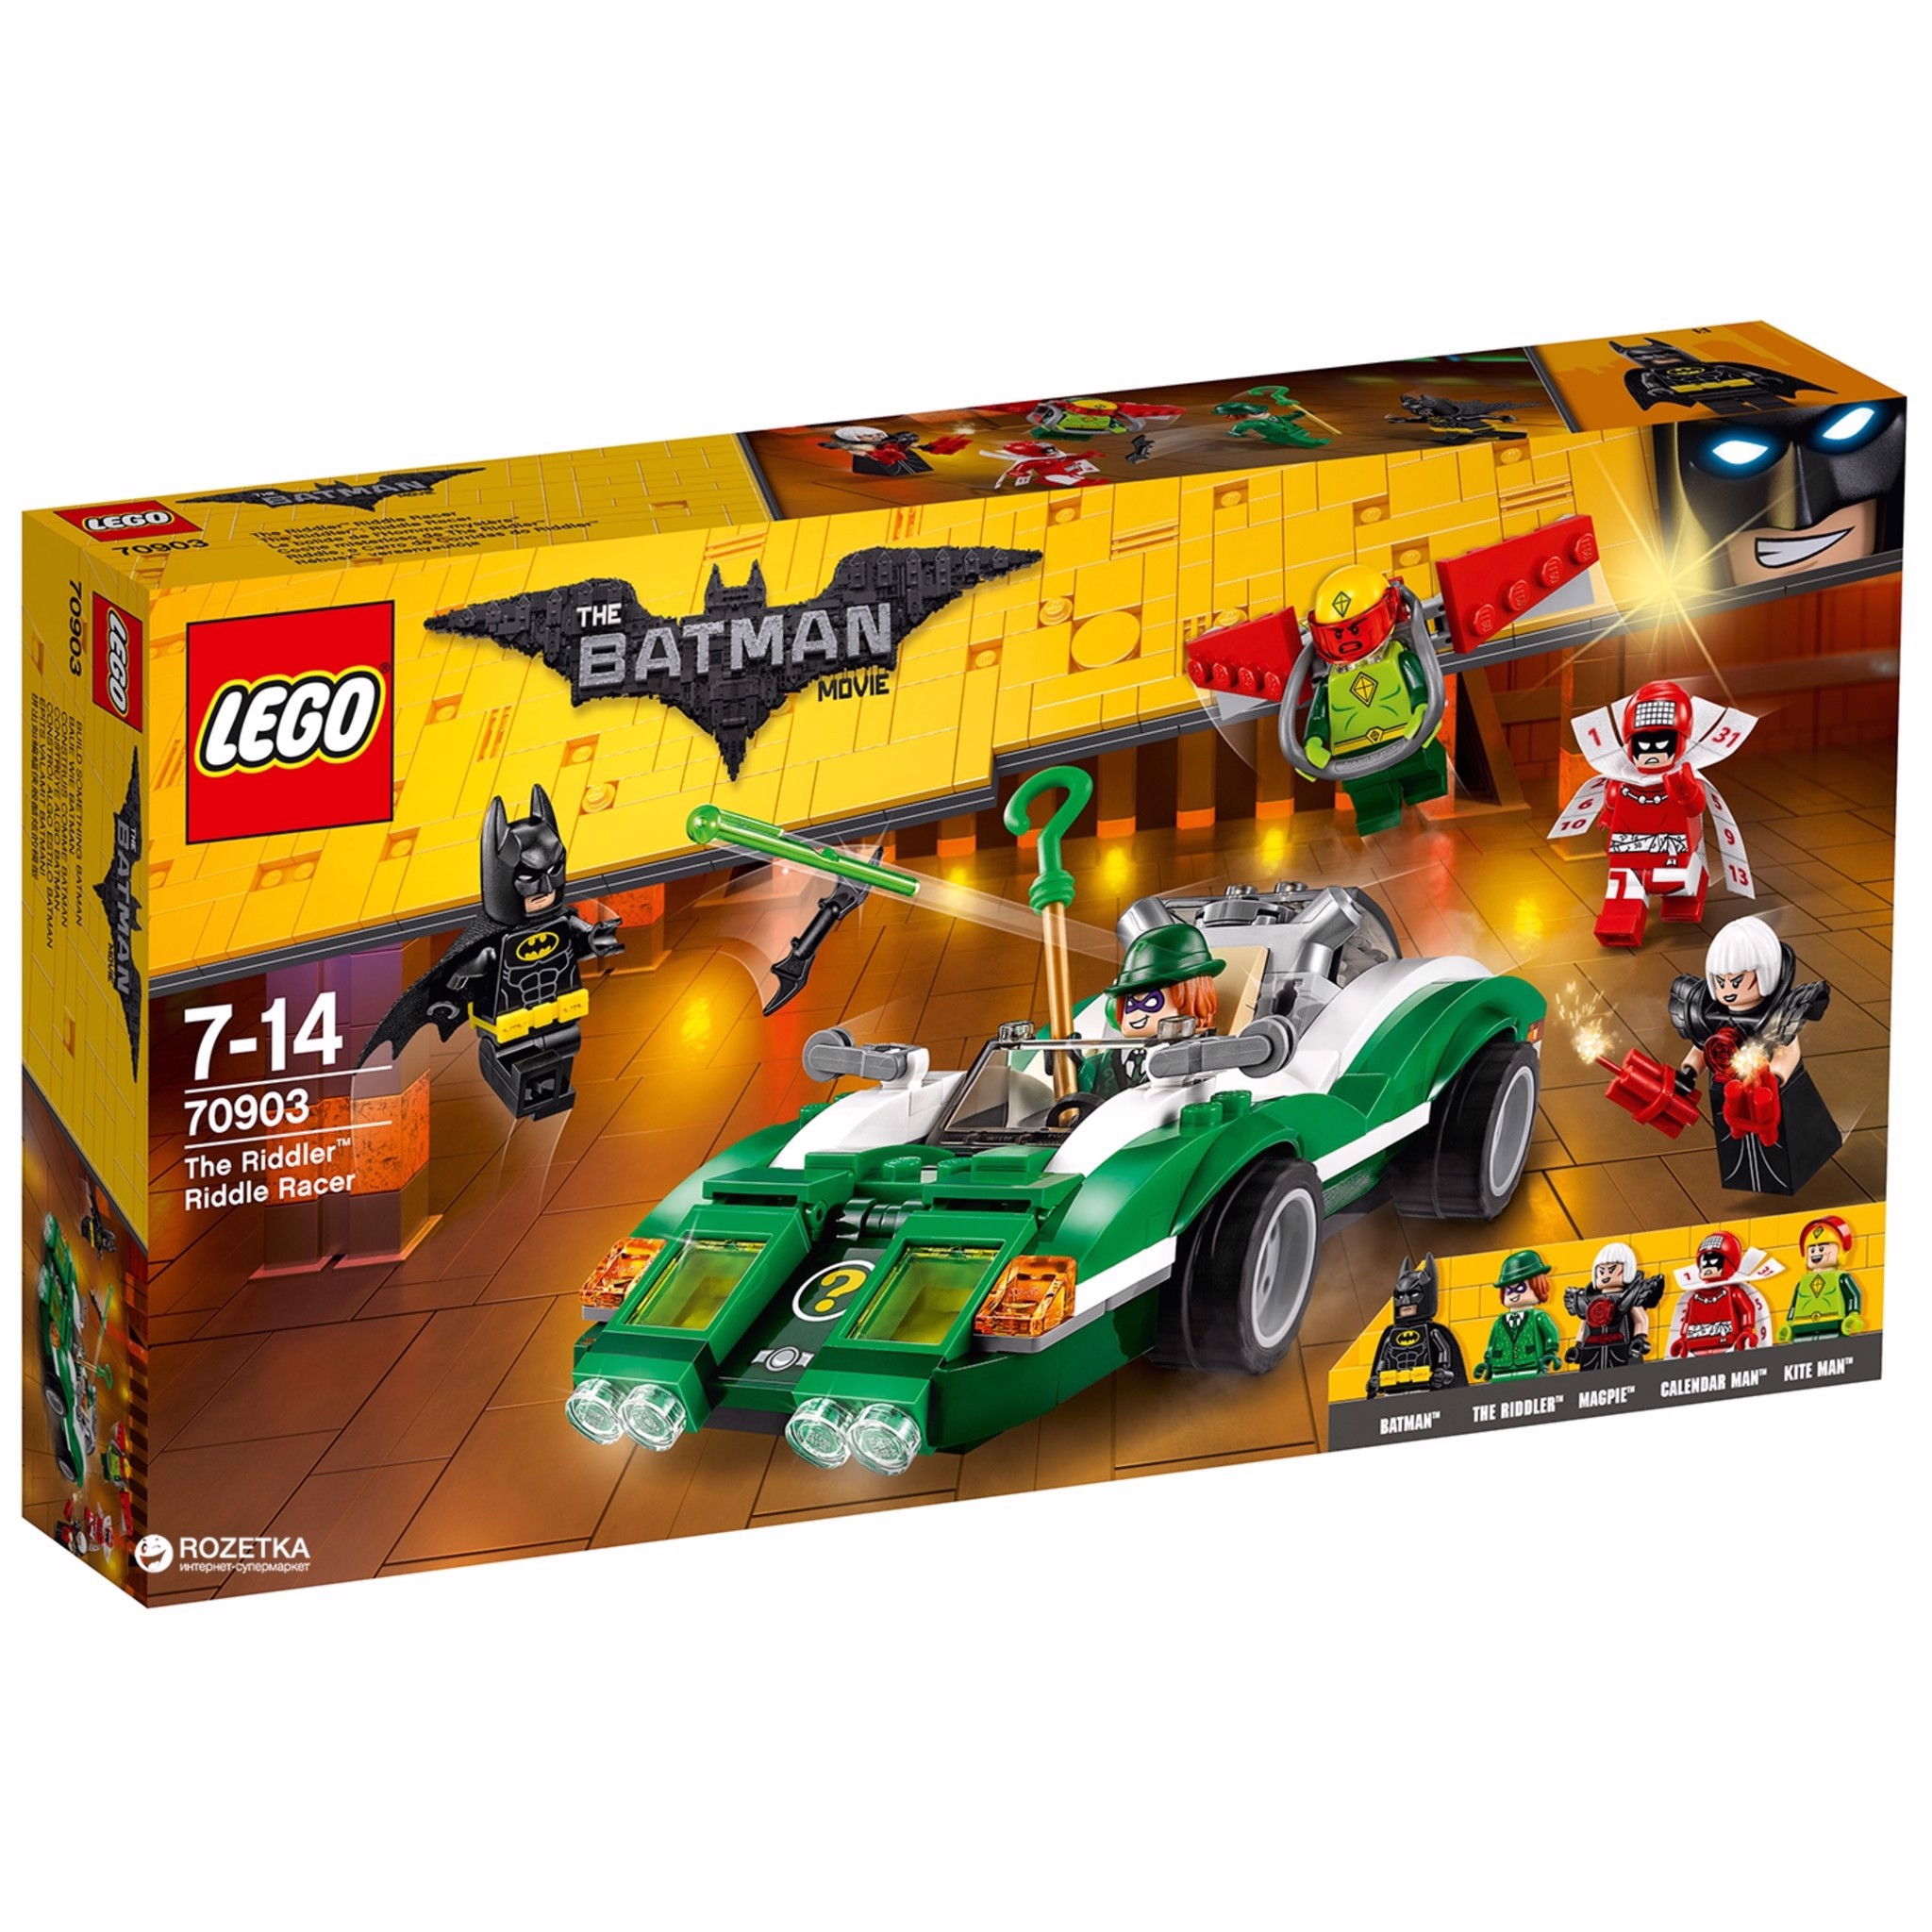 [CÓ HÀNG] LEGO DC 70903 The Riddler Riddle Racer The Batman Movie